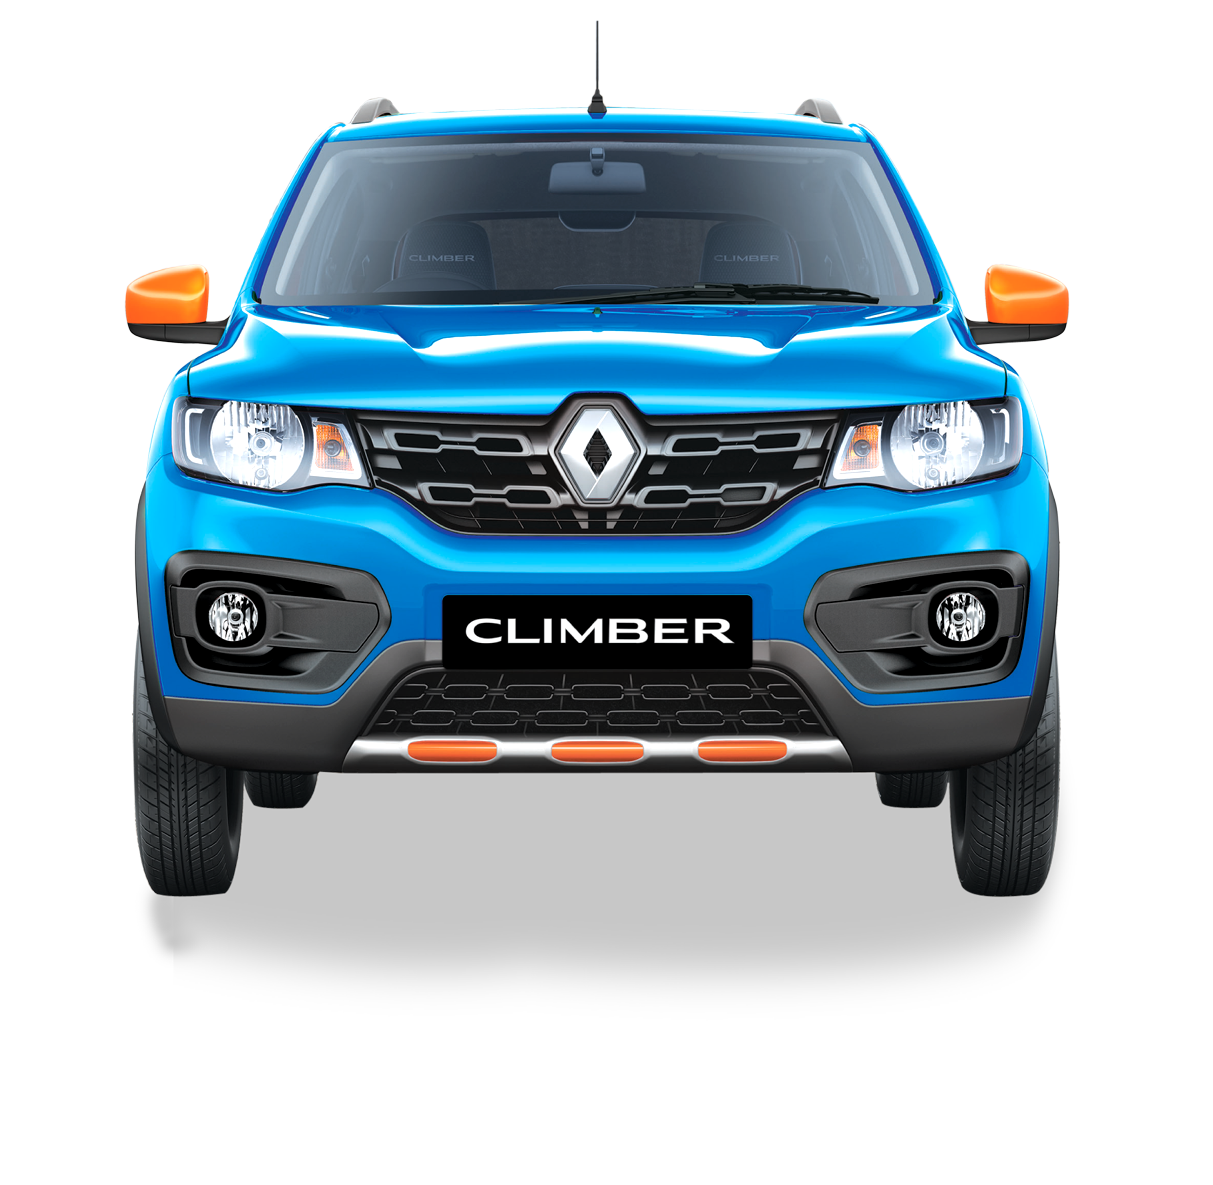 Renault Kwid Images Renault Kwid Hd Png Photo Transparent Free Download